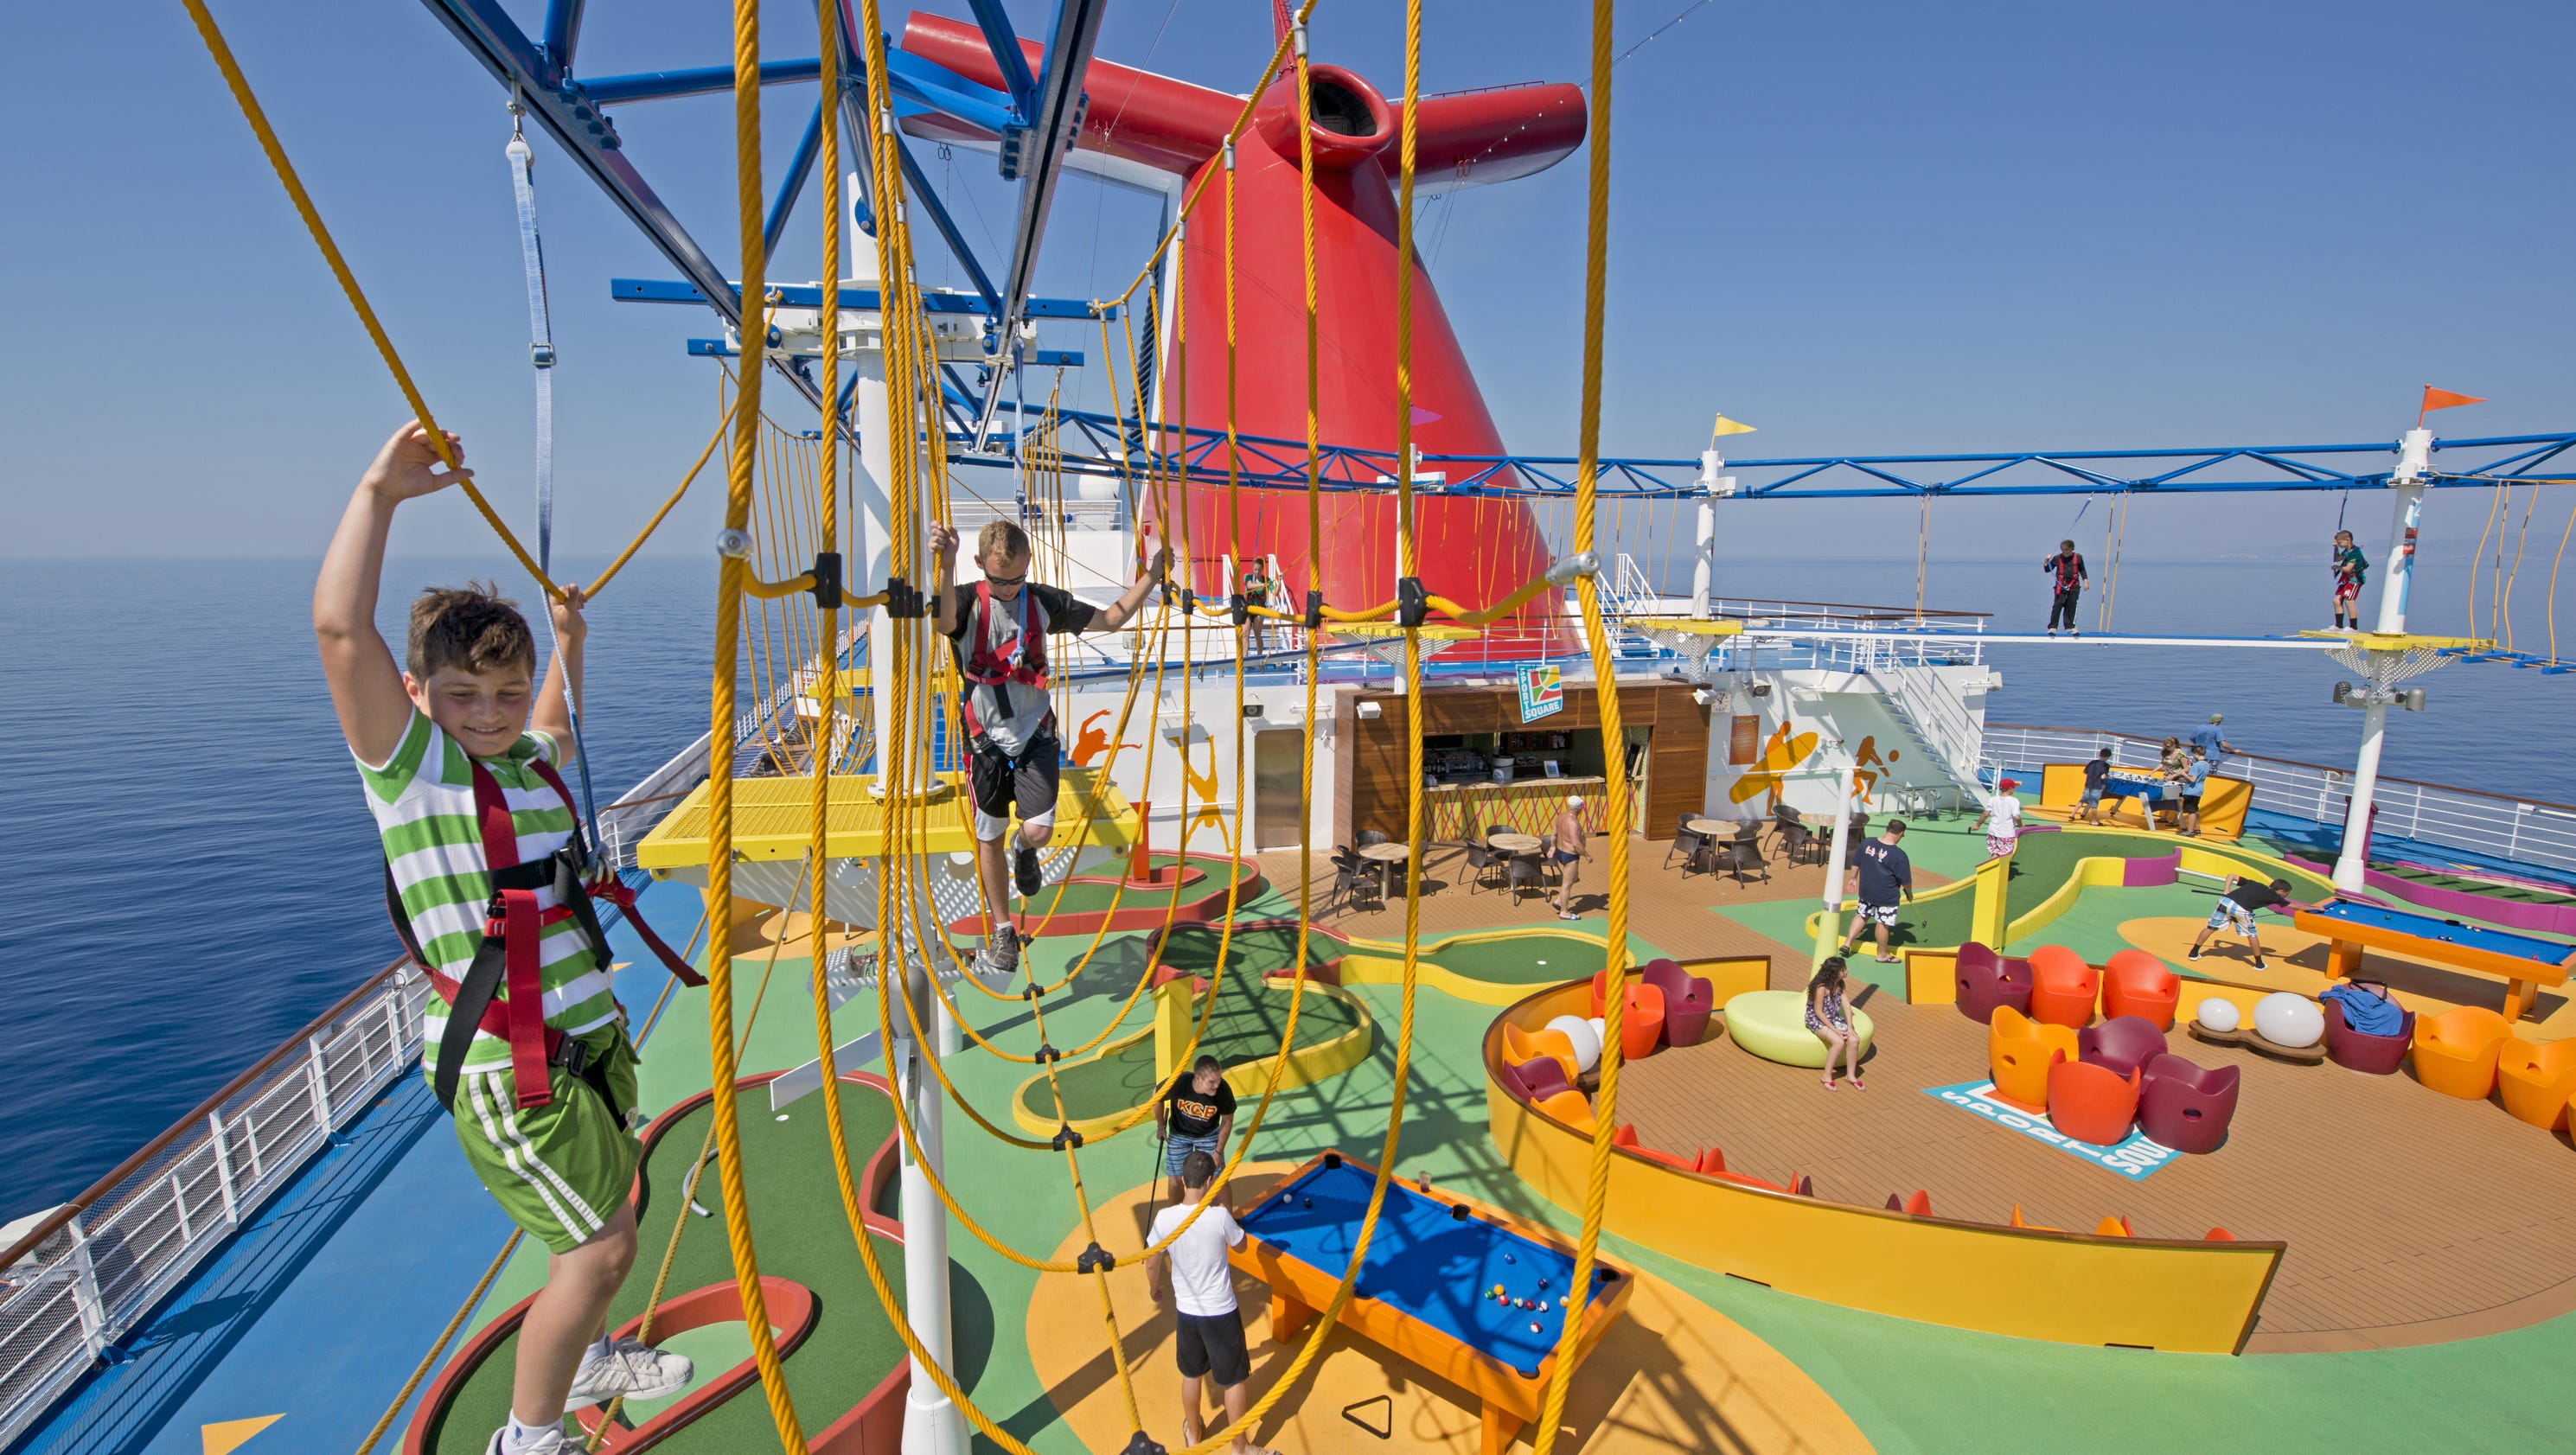 Carnival Bringing Breeze To Port Canaveral